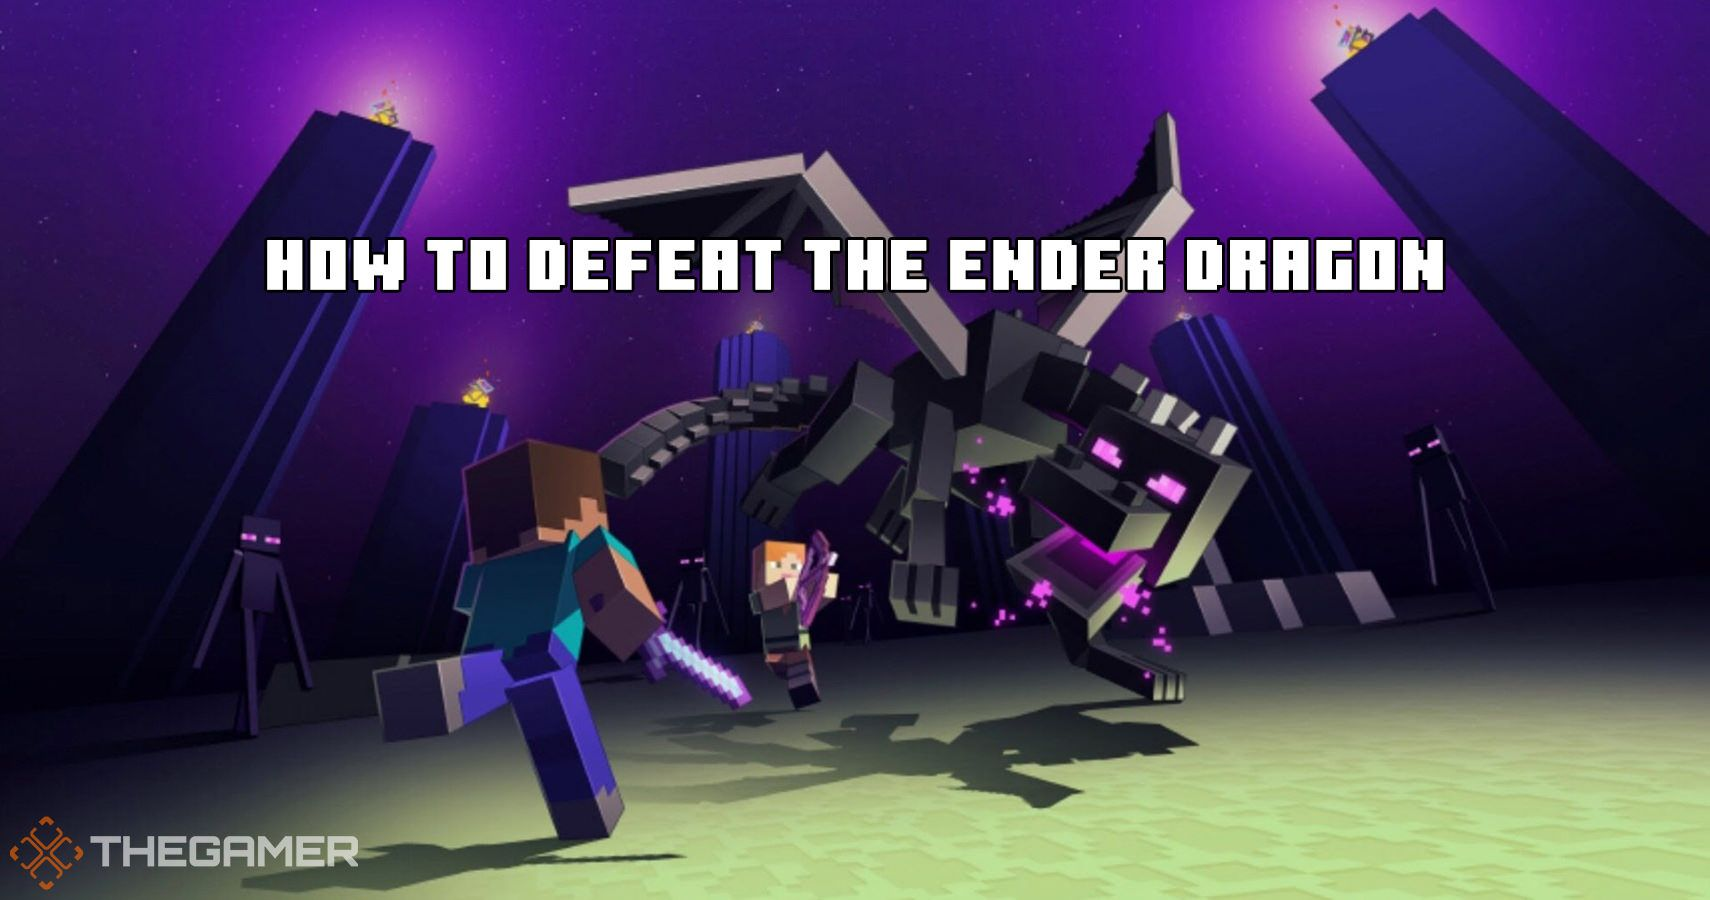 Minecraft: How To Defeat The Ender Dragon